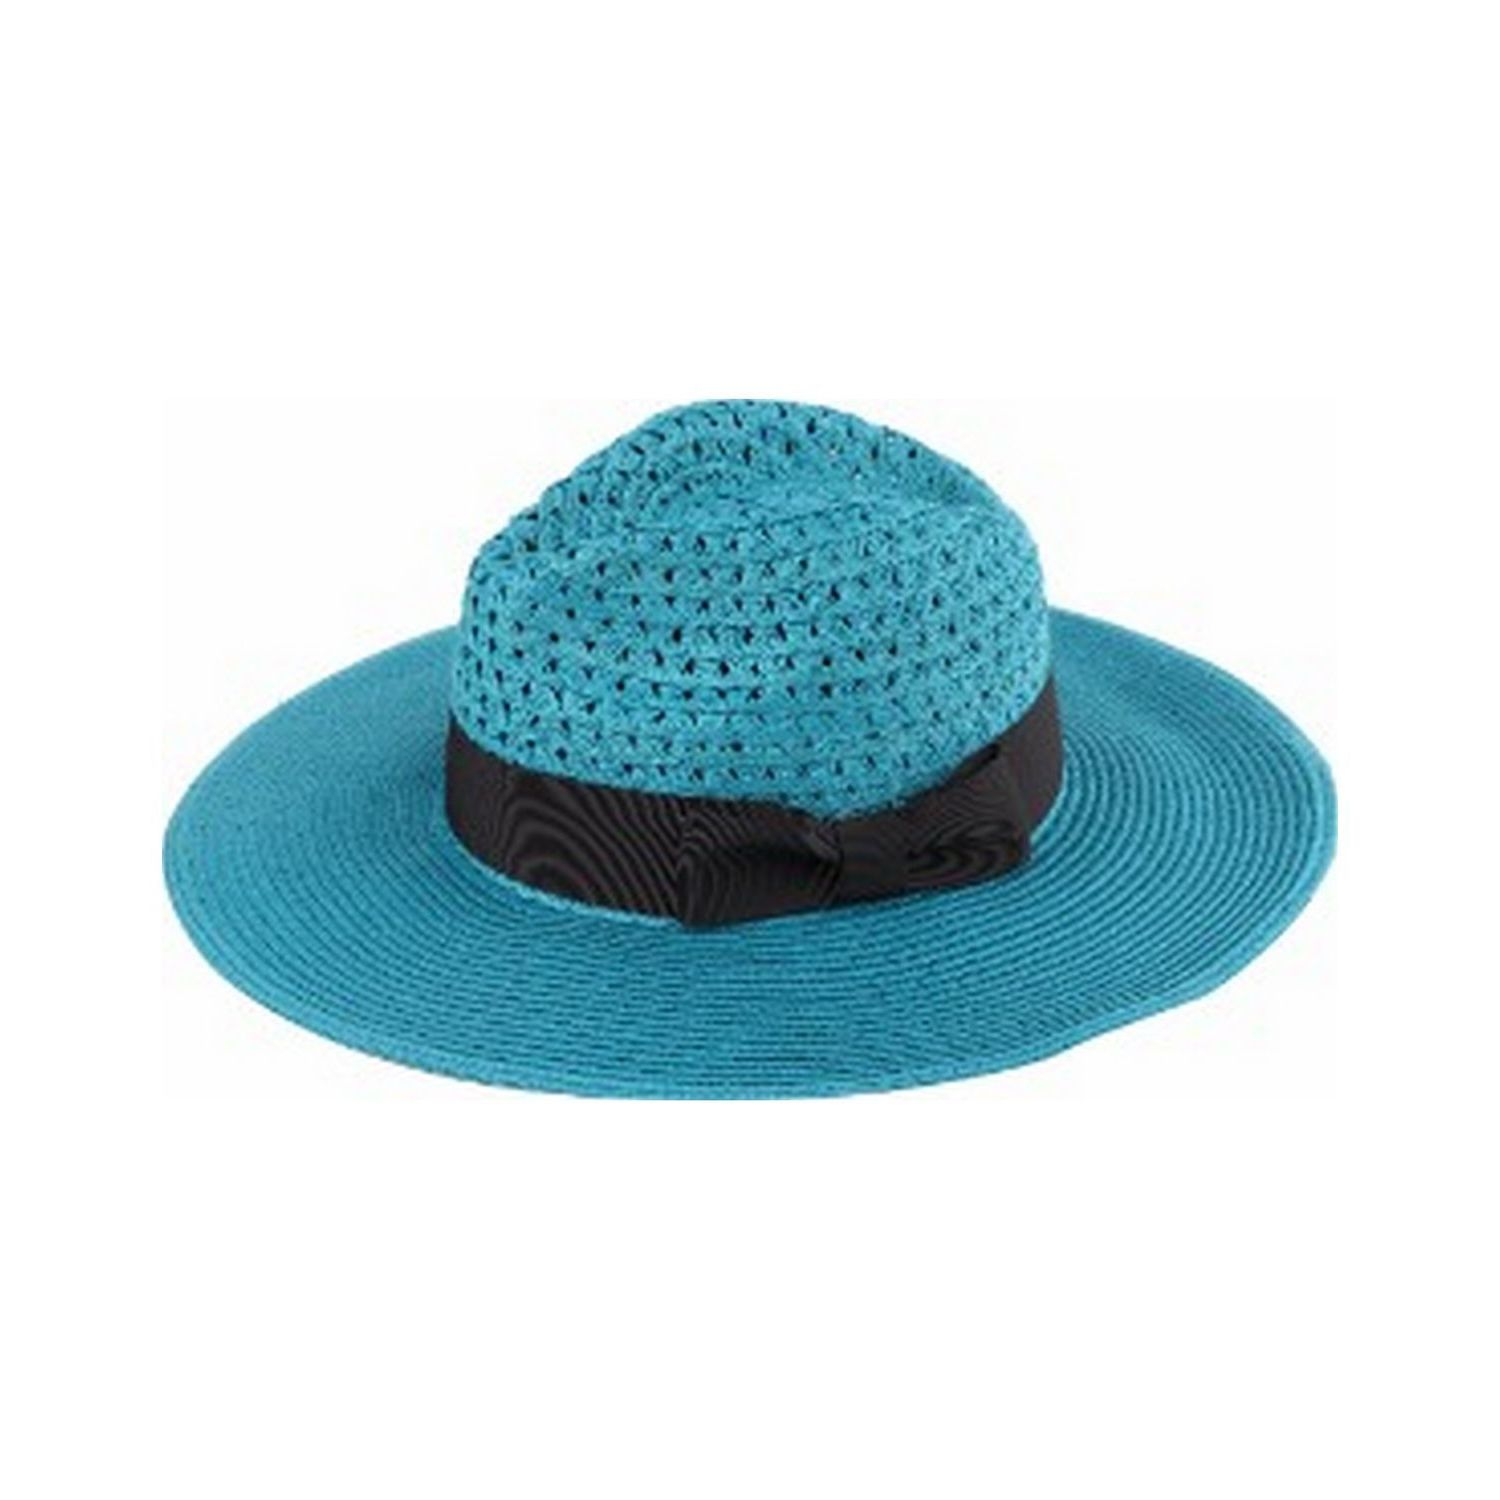 db9a9b1f961 Shop Zodaca Women s Sun Styles Sita Ladies Foldable Sun Hat (8 Colors  Available) - Free Shipping On Orders Over  45 - Overstock - 21289480